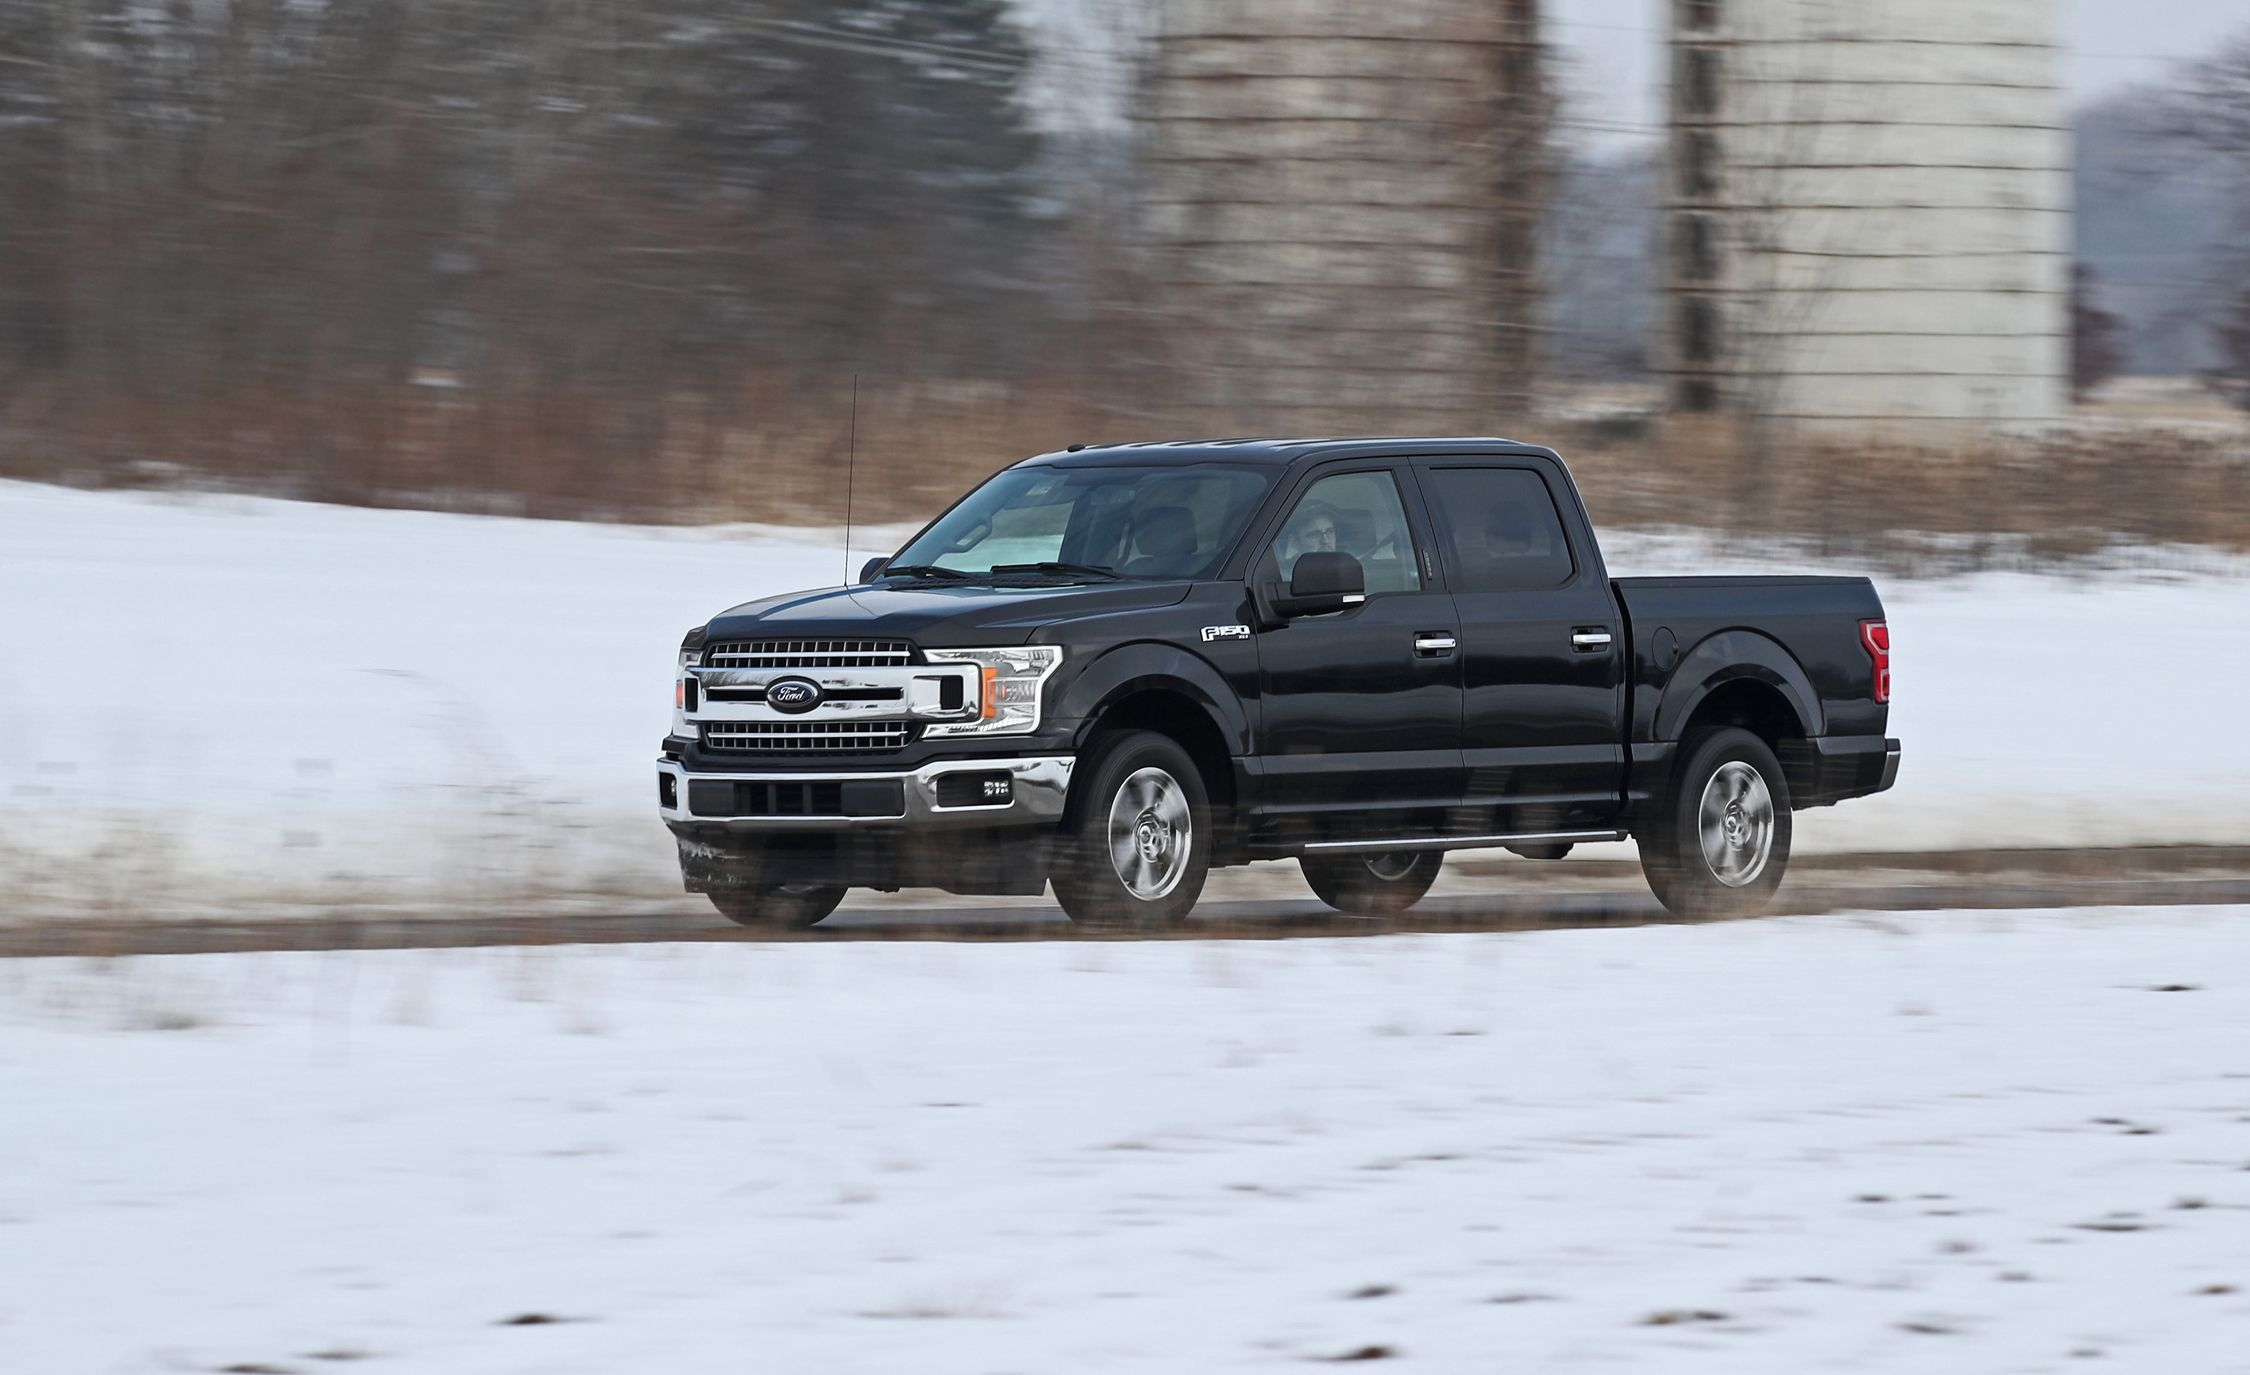 2018 Ford F-150 2.7L EcoBoost V-6 4x2 SuperCrew